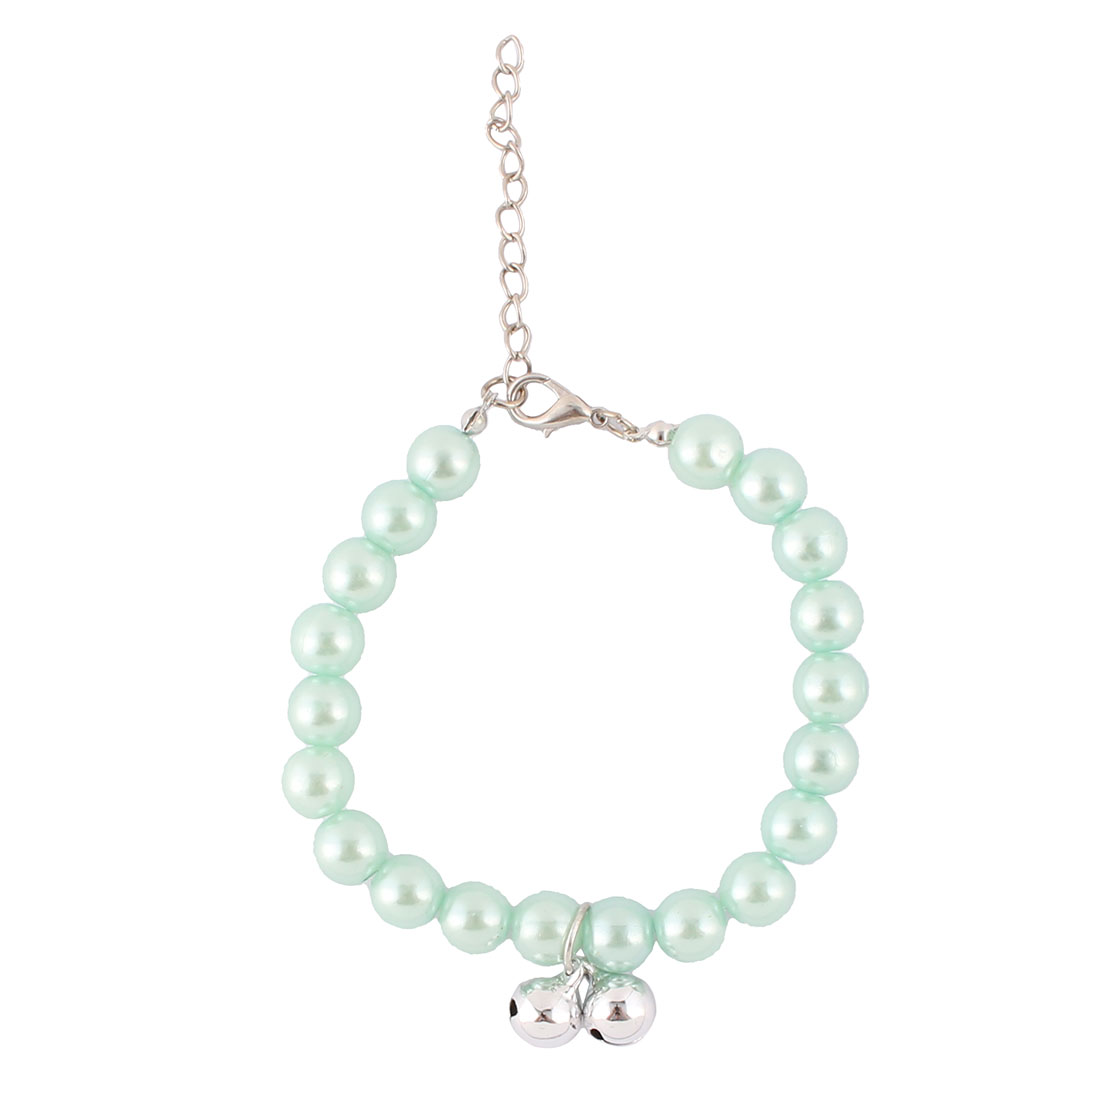 Cat Plastic Pearl Linked Round Beads Adjustable Chain Bells Decor Pet Necklace Light Blue